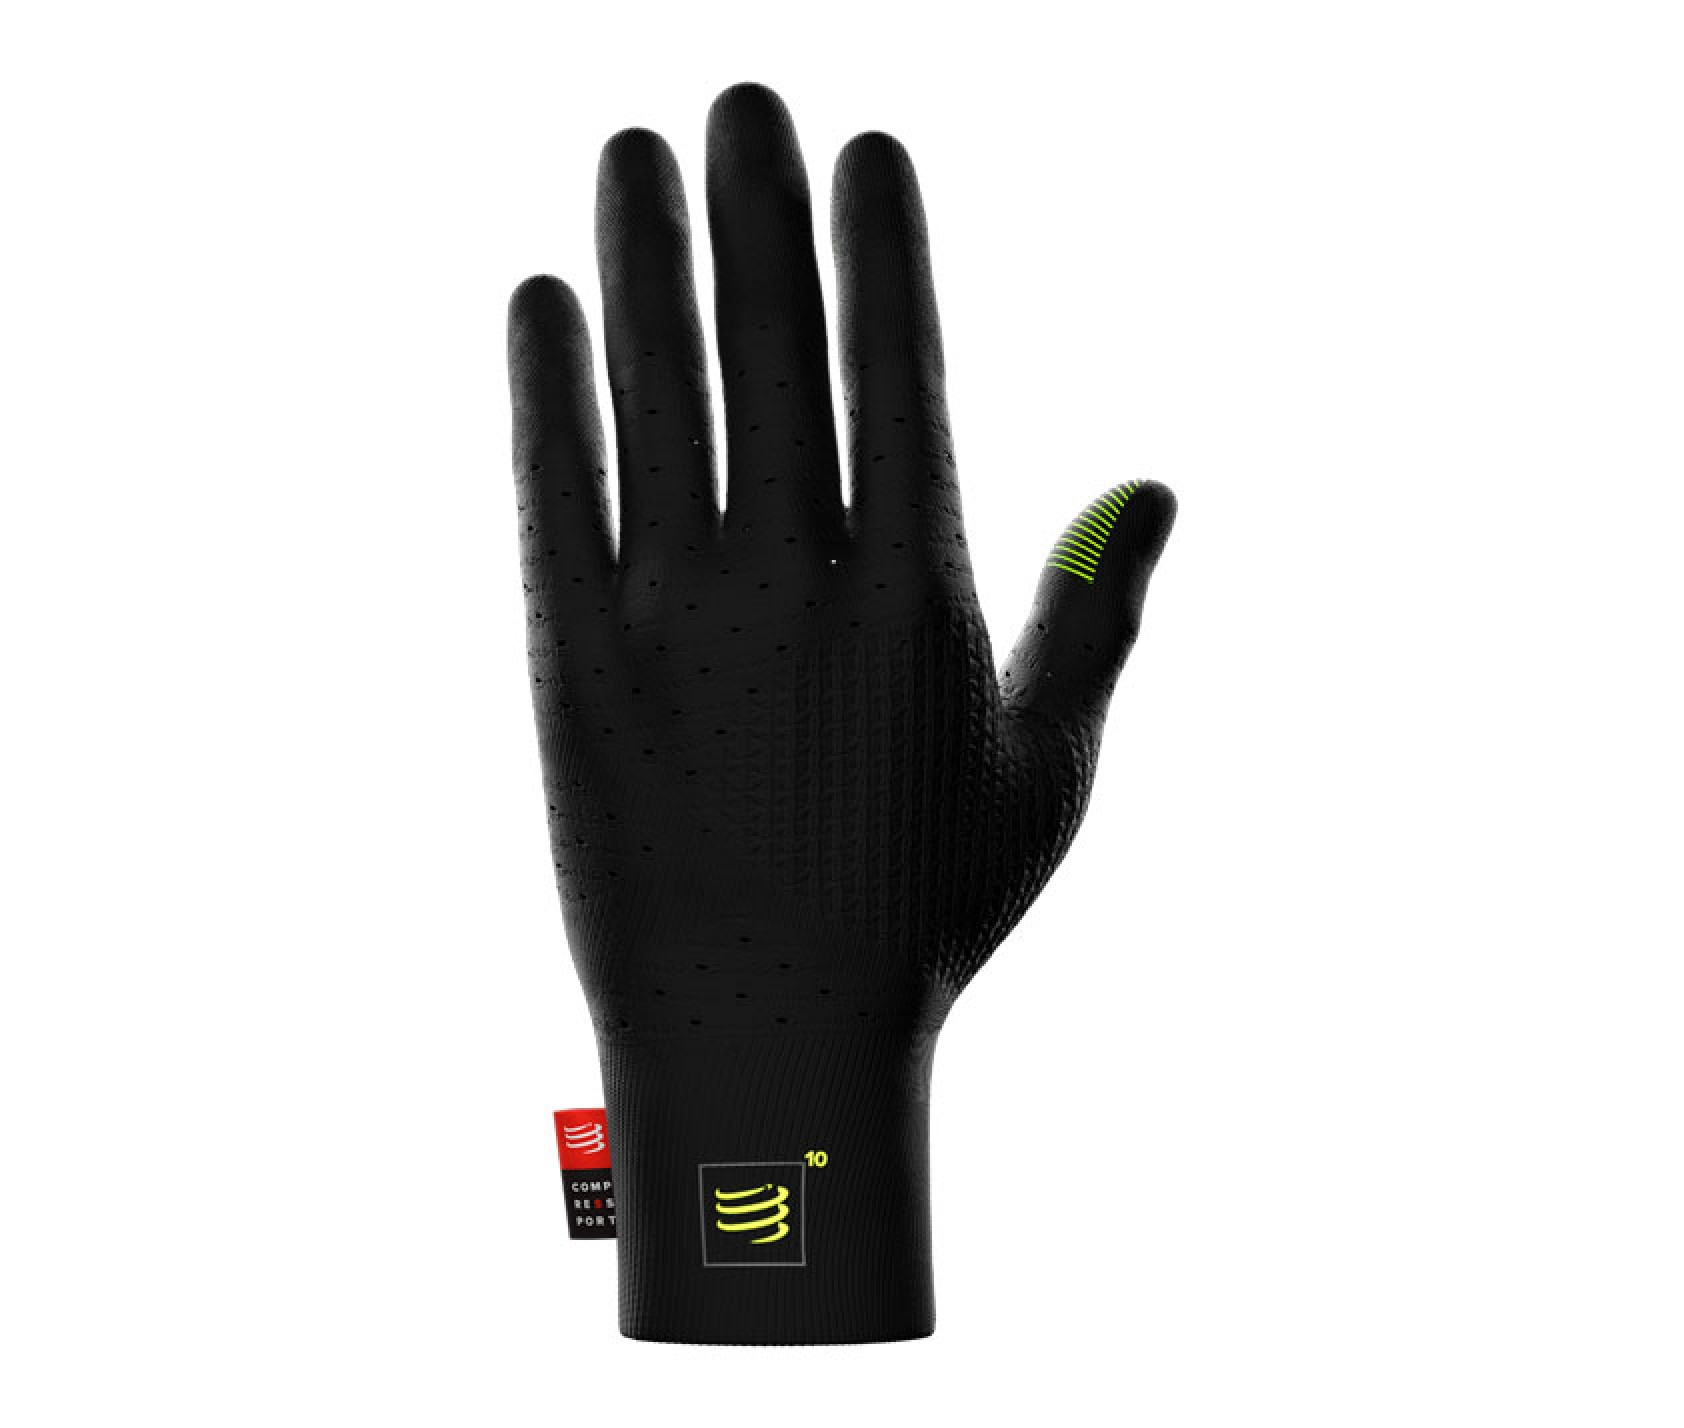 Γάντια Compressport Black Edition 3D Τhermo Gloves 5b44a987bf3